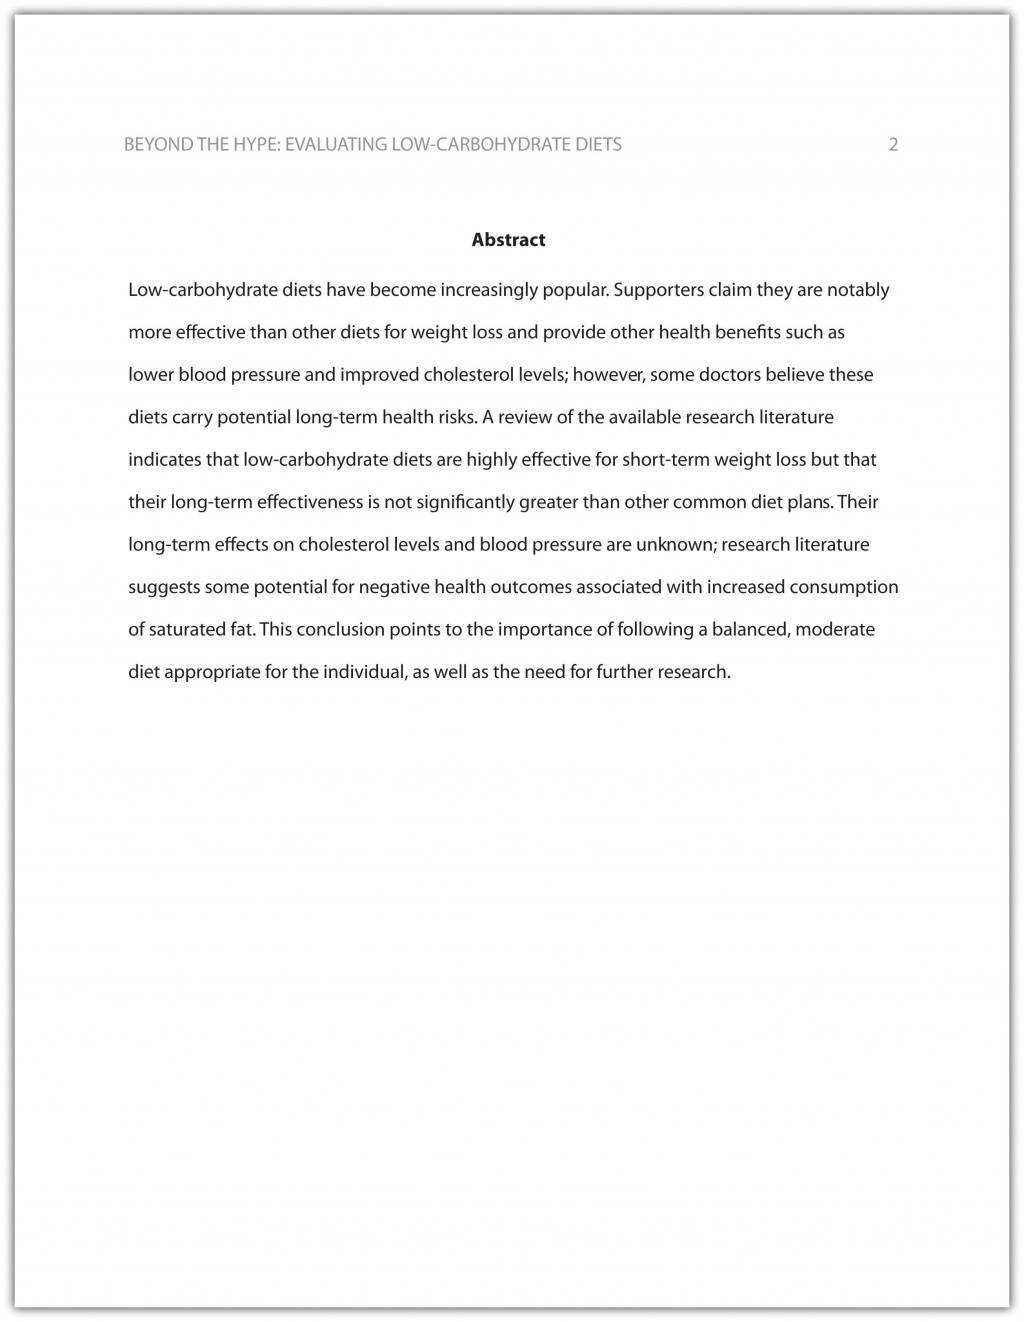 004 Research Paper How To Write An Abstract For Purdue Magnificent A Owl Writing Apa Examples Large